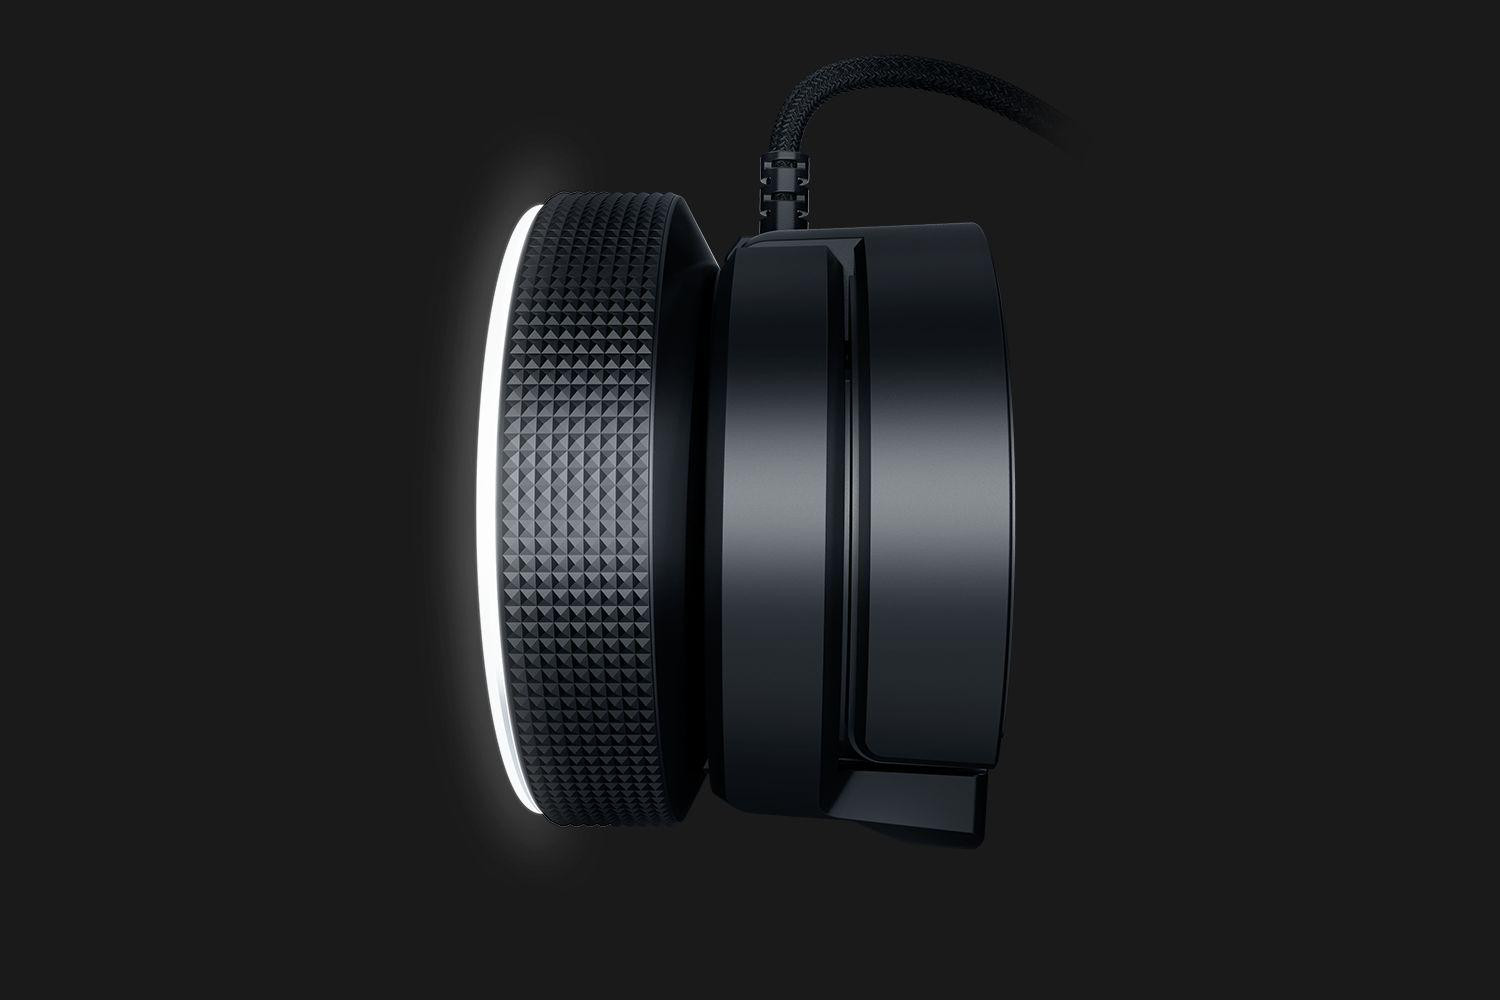 Webcam Razer Kiyo HD 720p, Image resolution: 4 Megapixels, Still Image Resolution: 2688x1520, 720p up to 60fps, microfon, USB, Cable Length: 1.5 meters braided cable, Compatible with Open Broadcaster Software and Xspli - imaginea 4